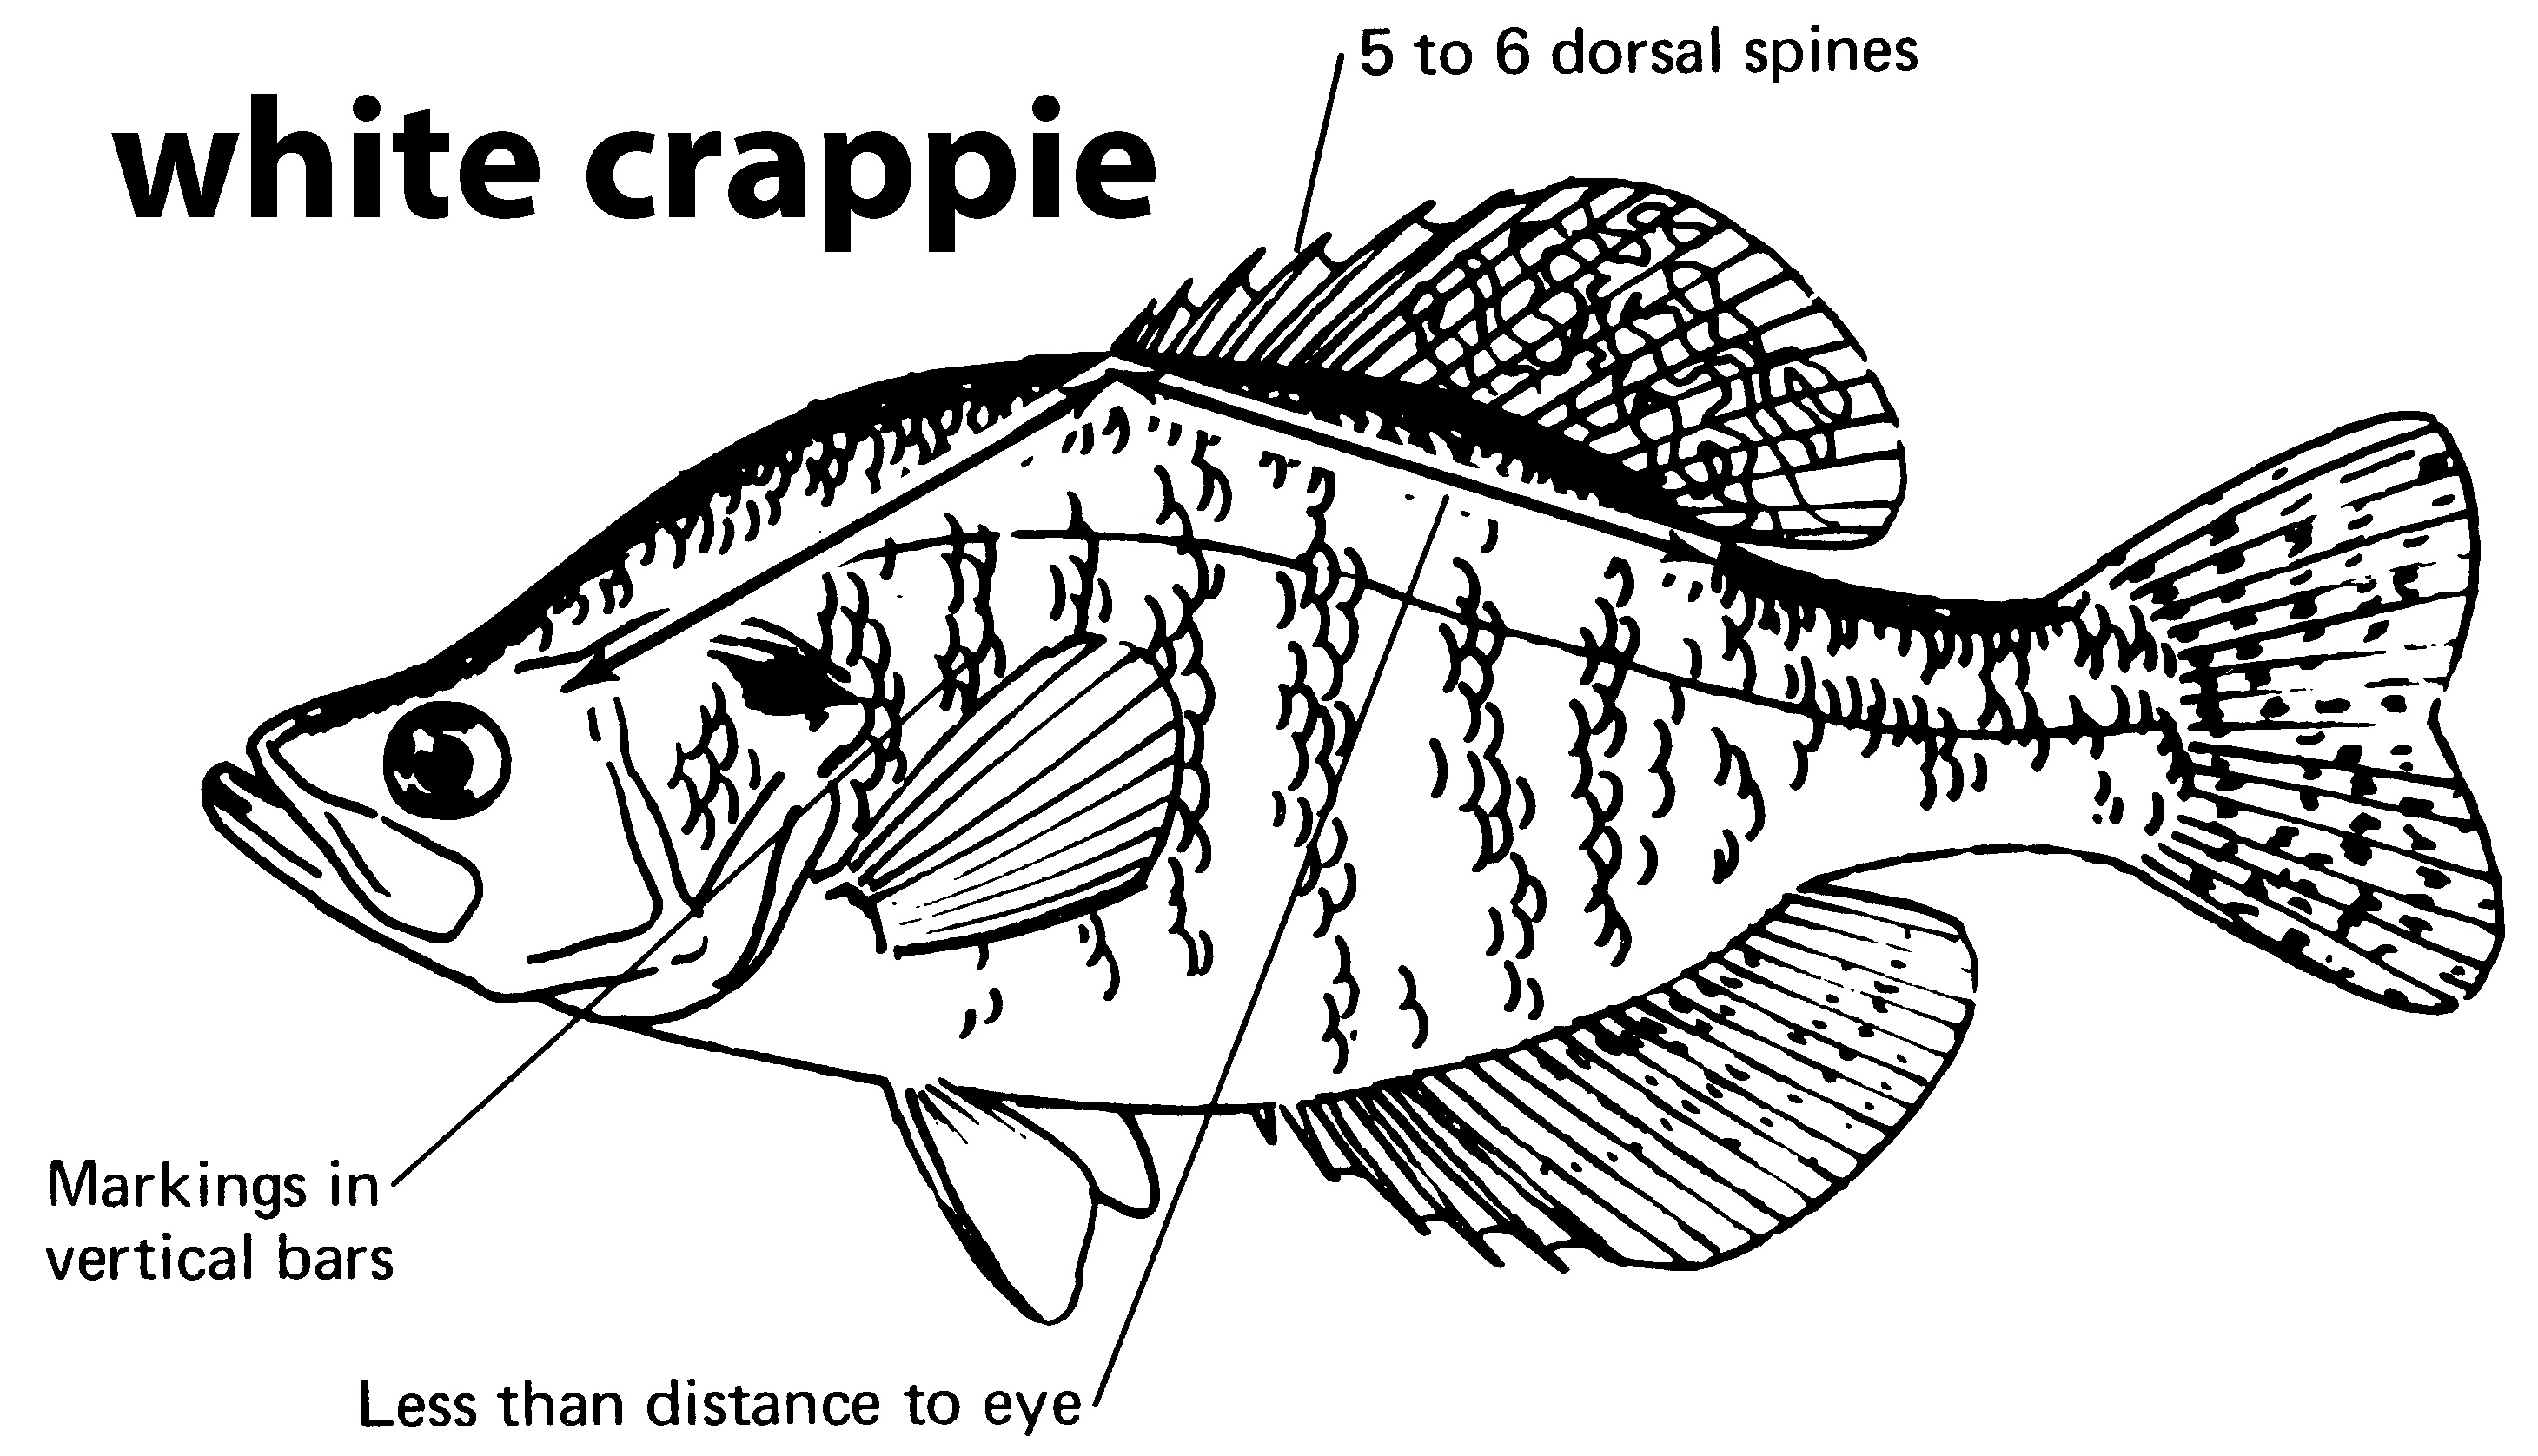 characteristics of a white crappie